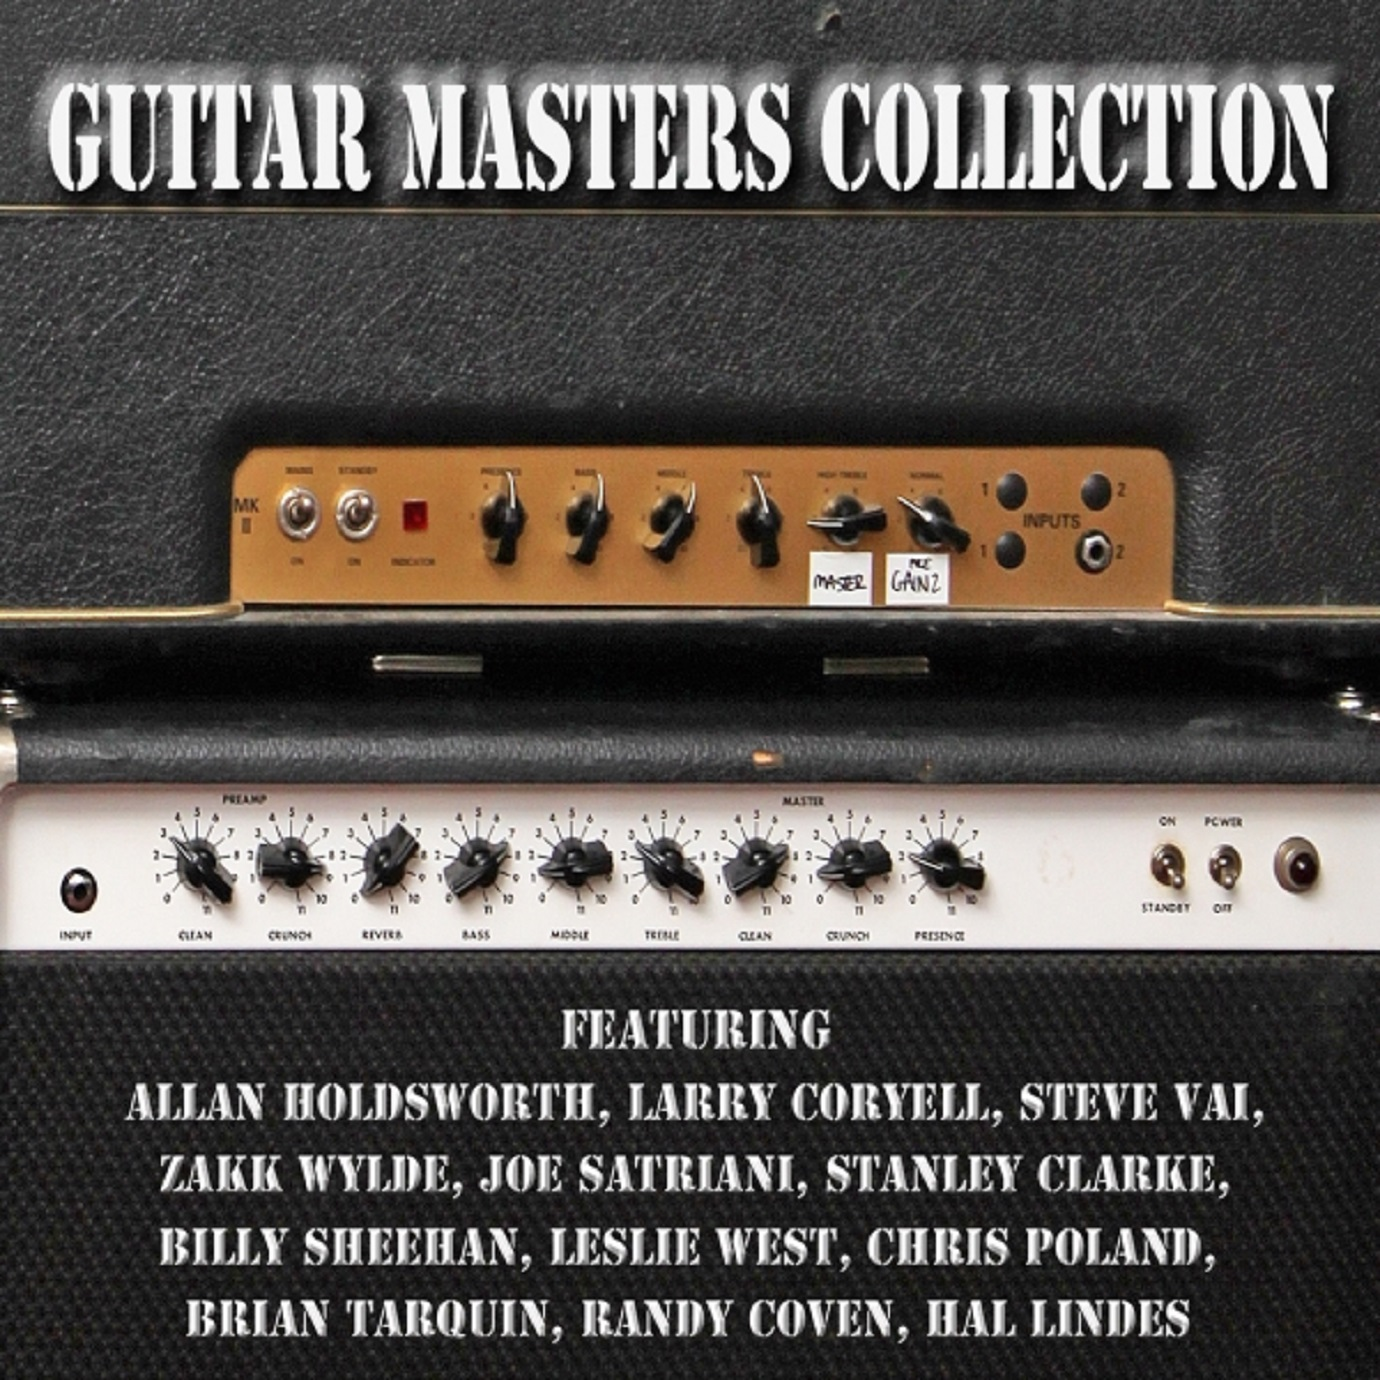 A Masterful Collection Of Guitar Playing Virtuosos Put Together By Emmy Award-Winning Producer Brian Tarquin